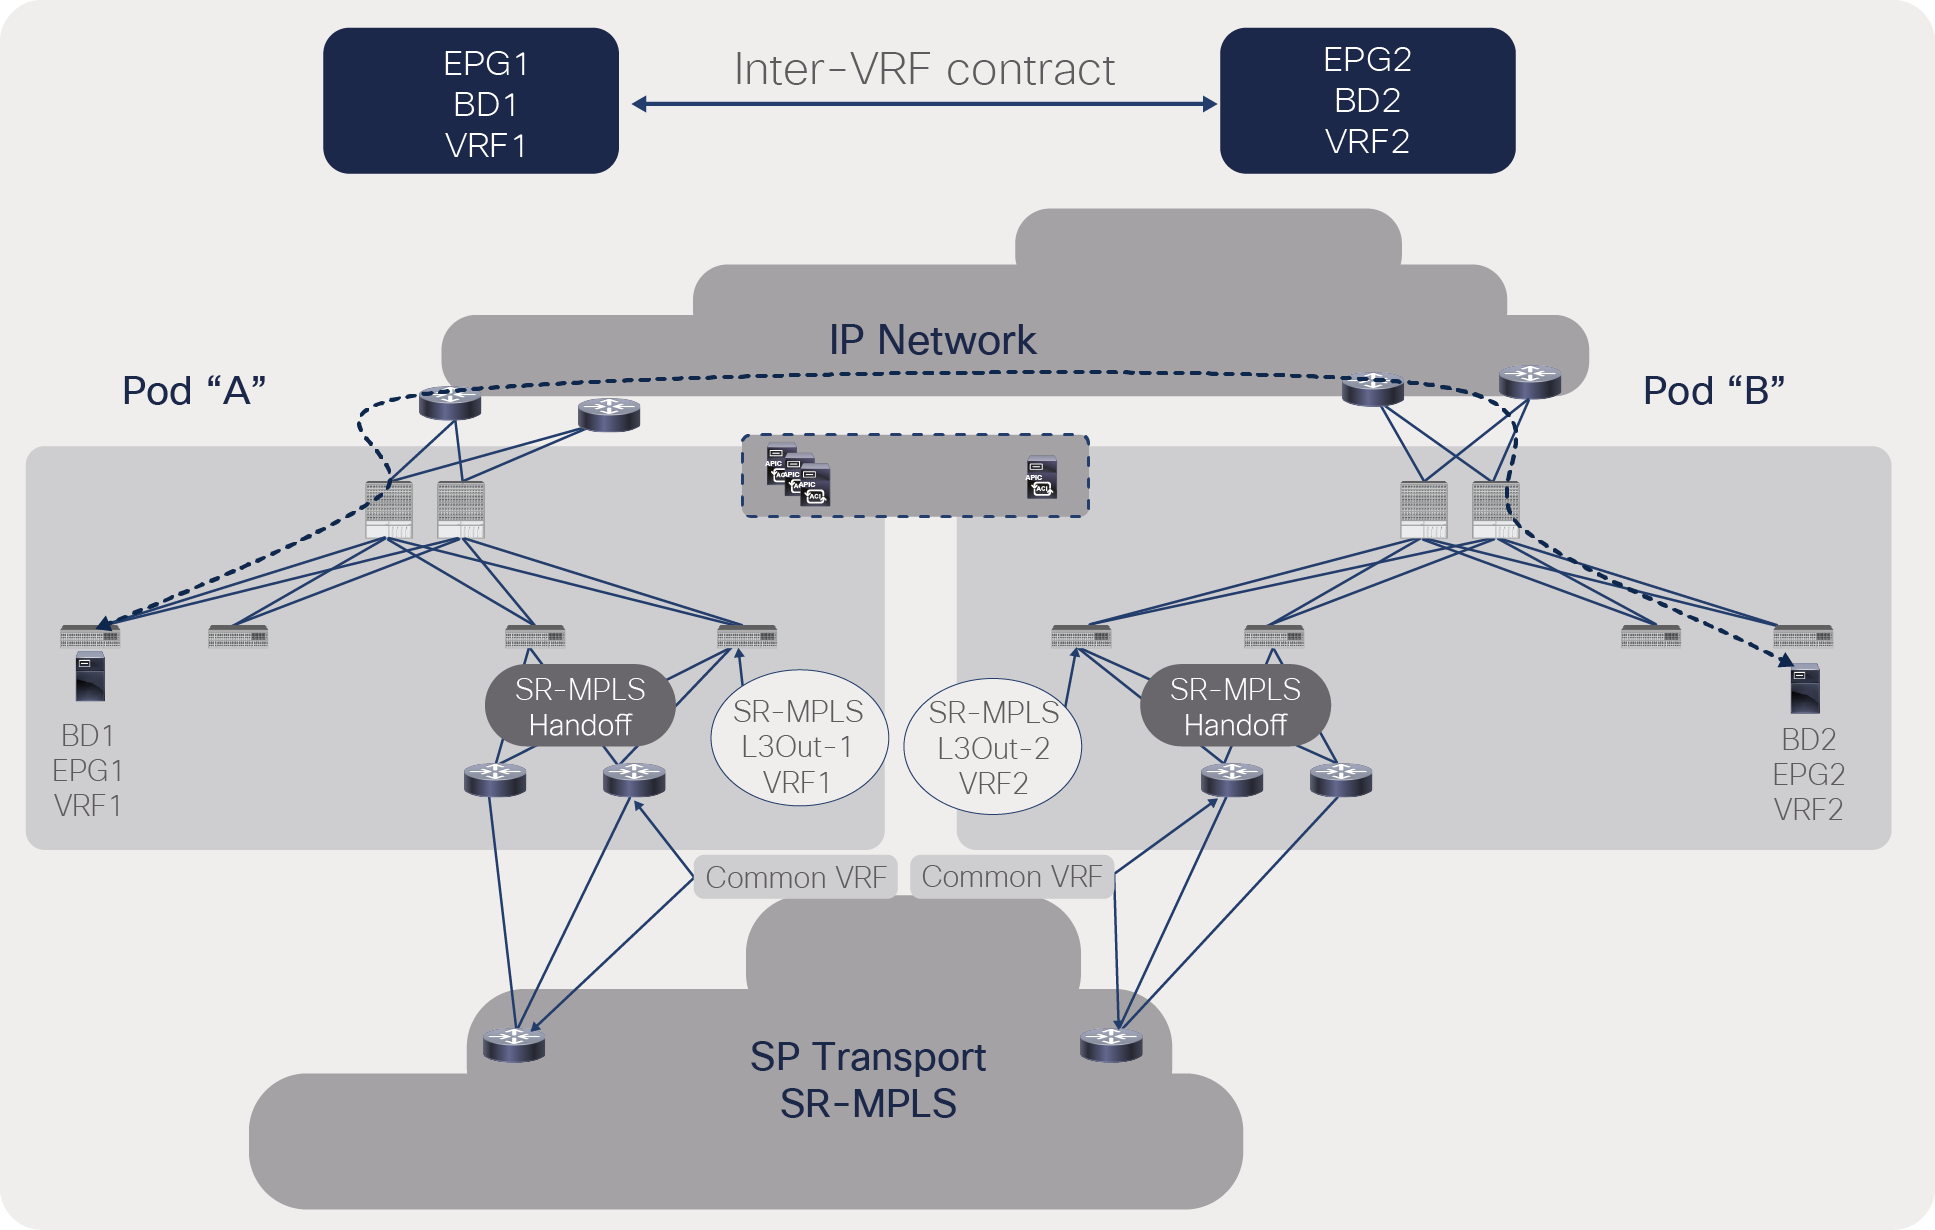 Traffic forwarding between ACI pods with an inter-VRF contract between pods